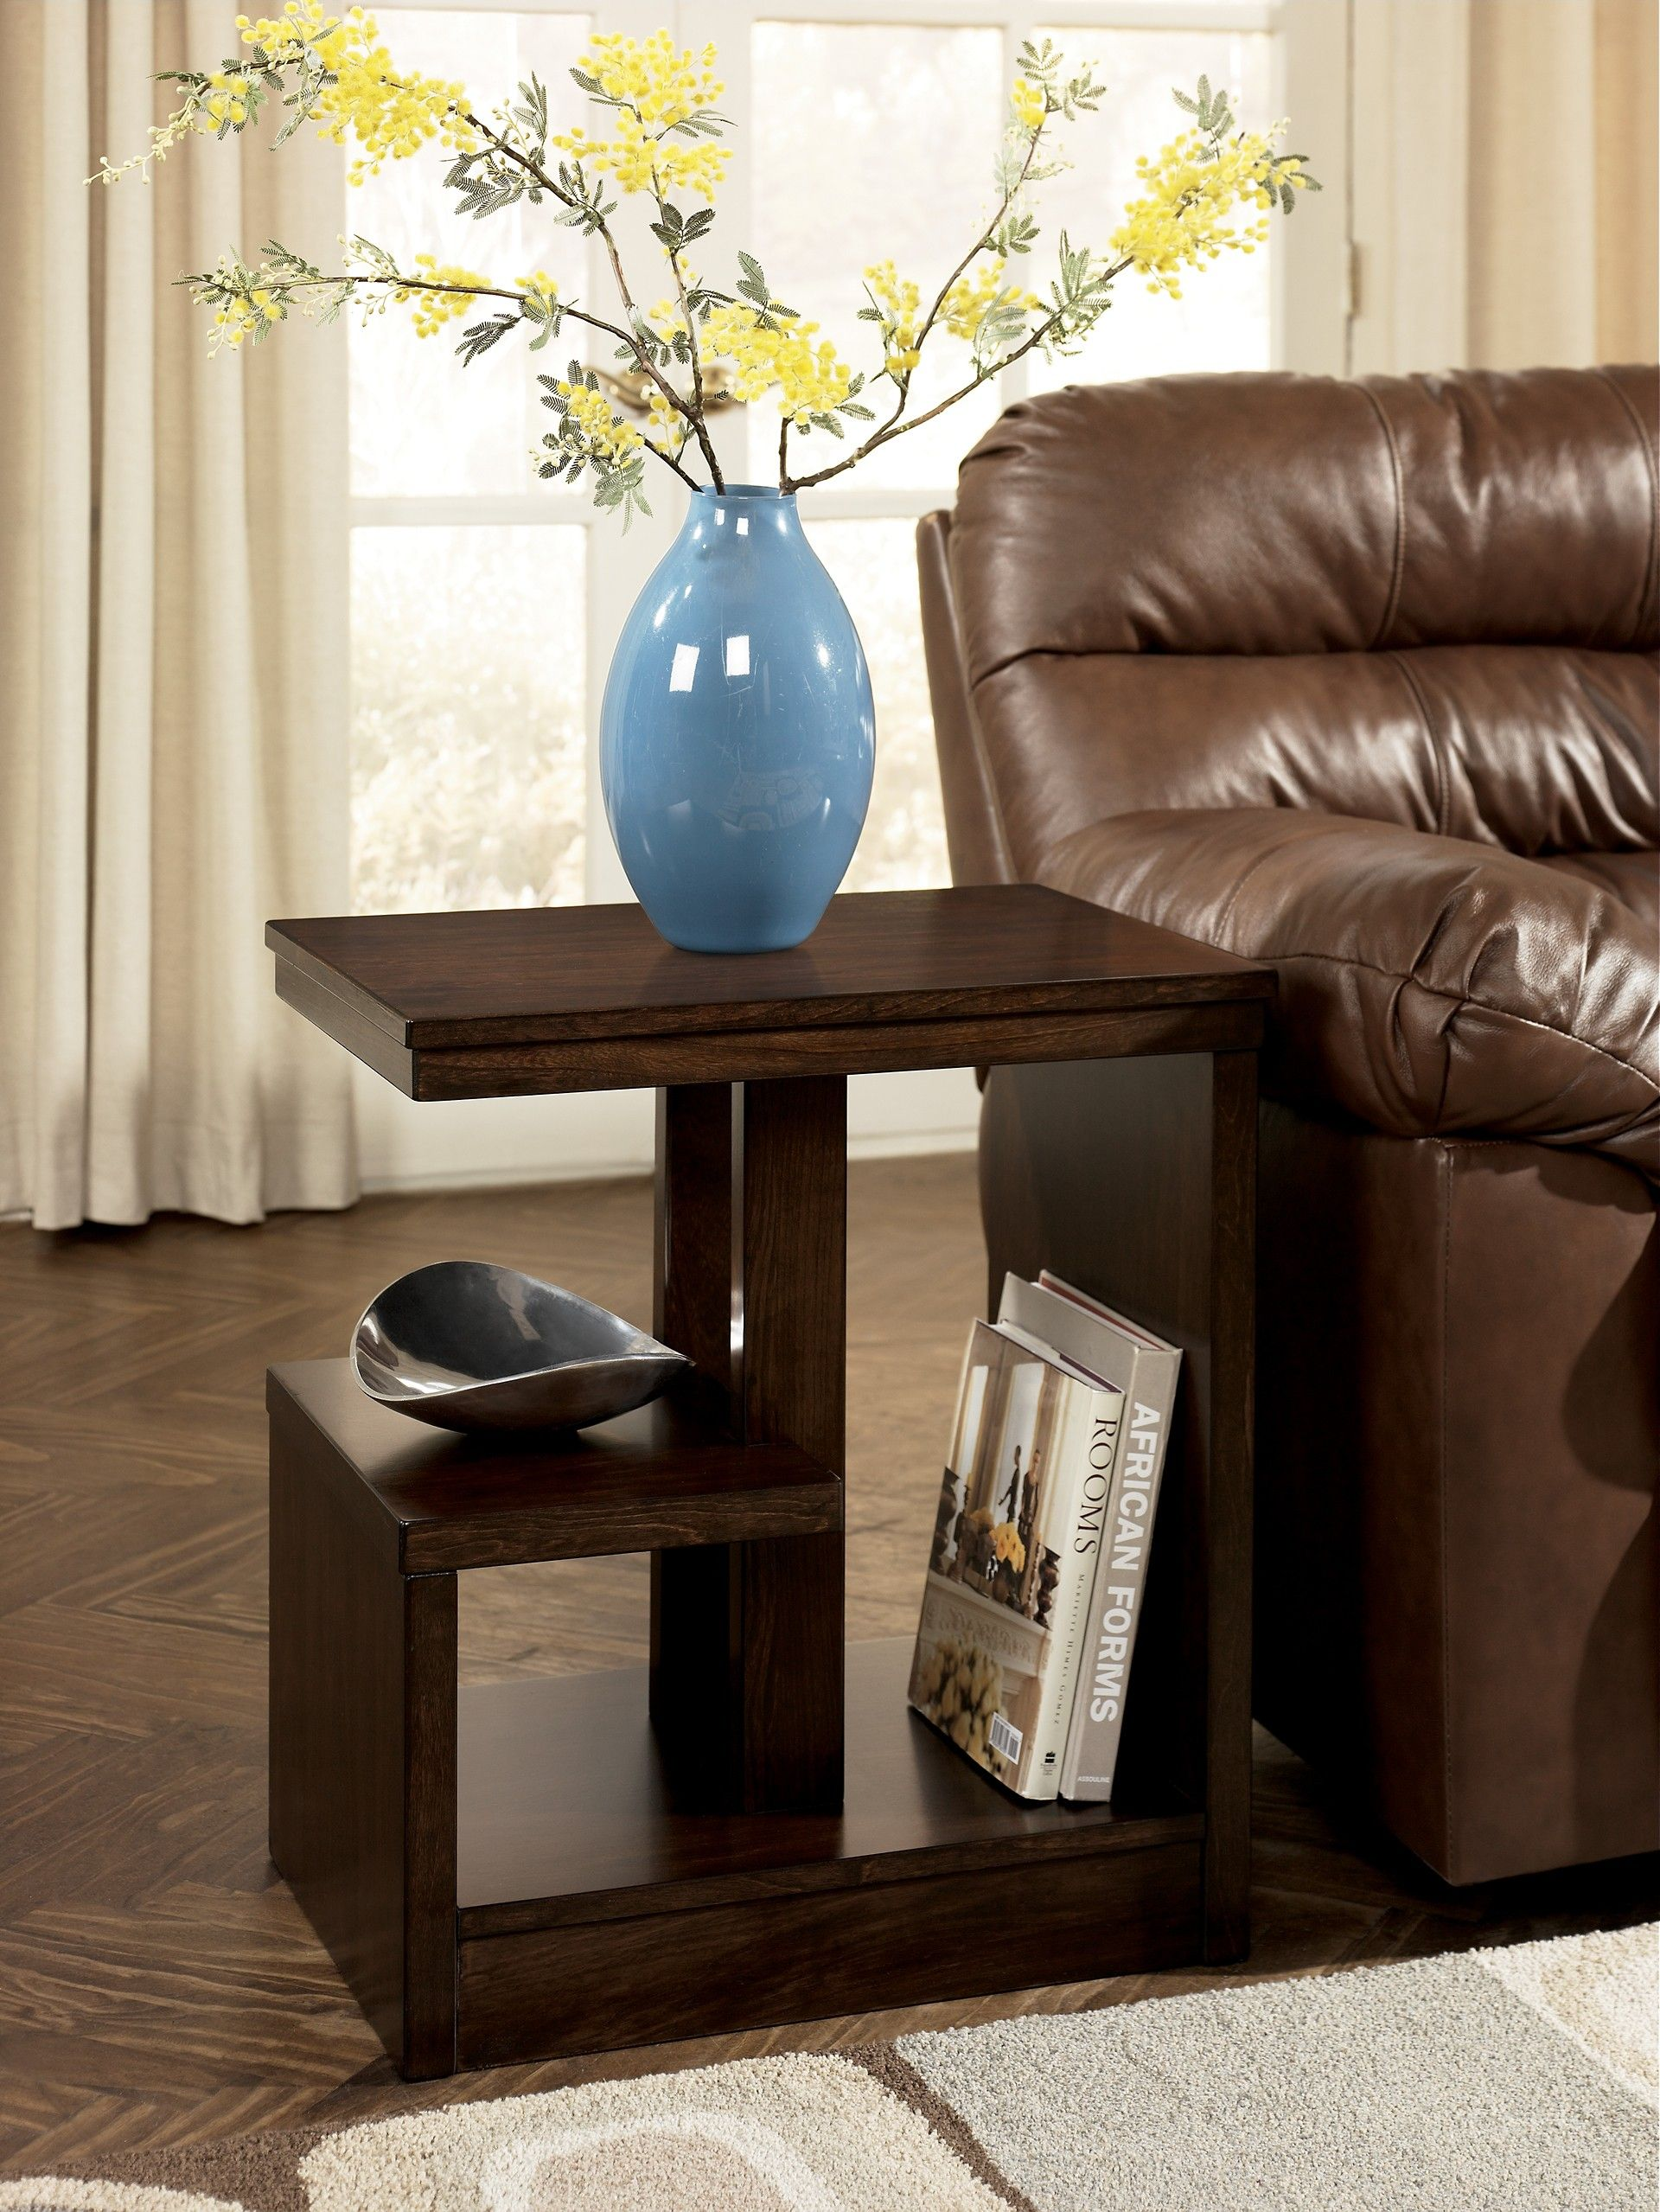 Ashley Callum T670 7 Signature Design Chair Side End Table Contemporary Side Tables Living Room Table Living Room Side Table